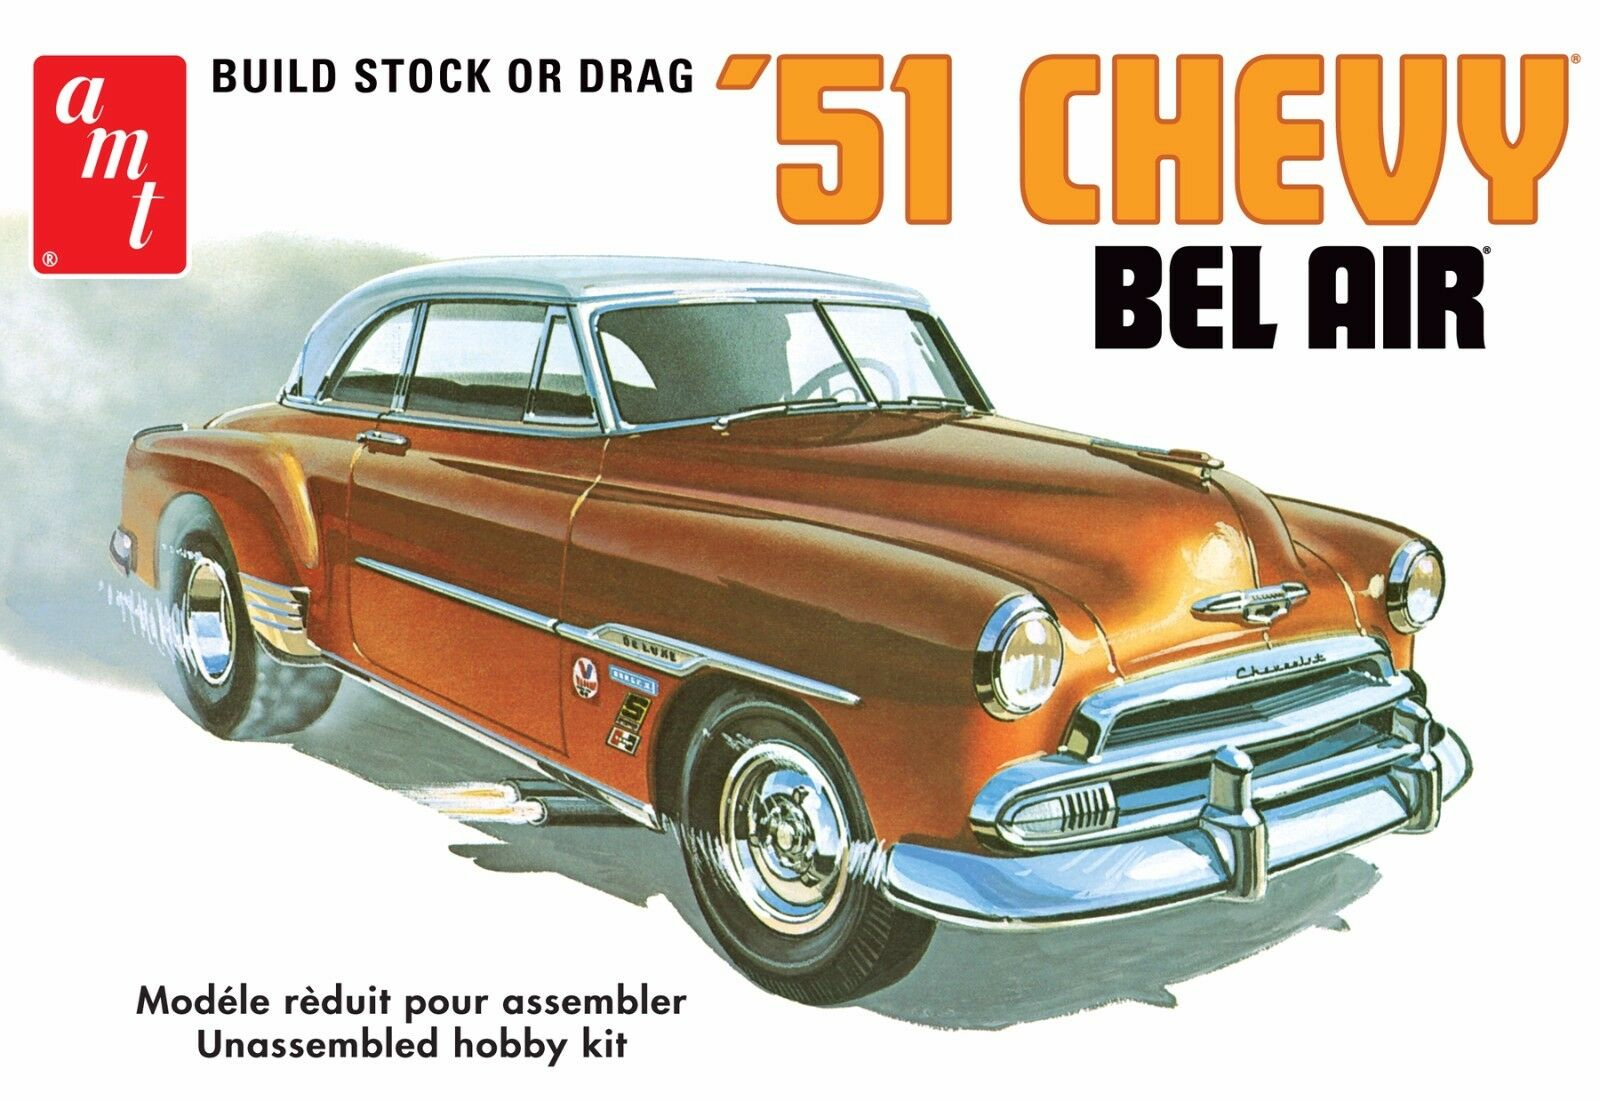 1951 Chevy Styleline Wiring Harness Library Rat Rod Ebay Amt 862 1 25 Scale Bel Air Hardtop Plastic Model Kit